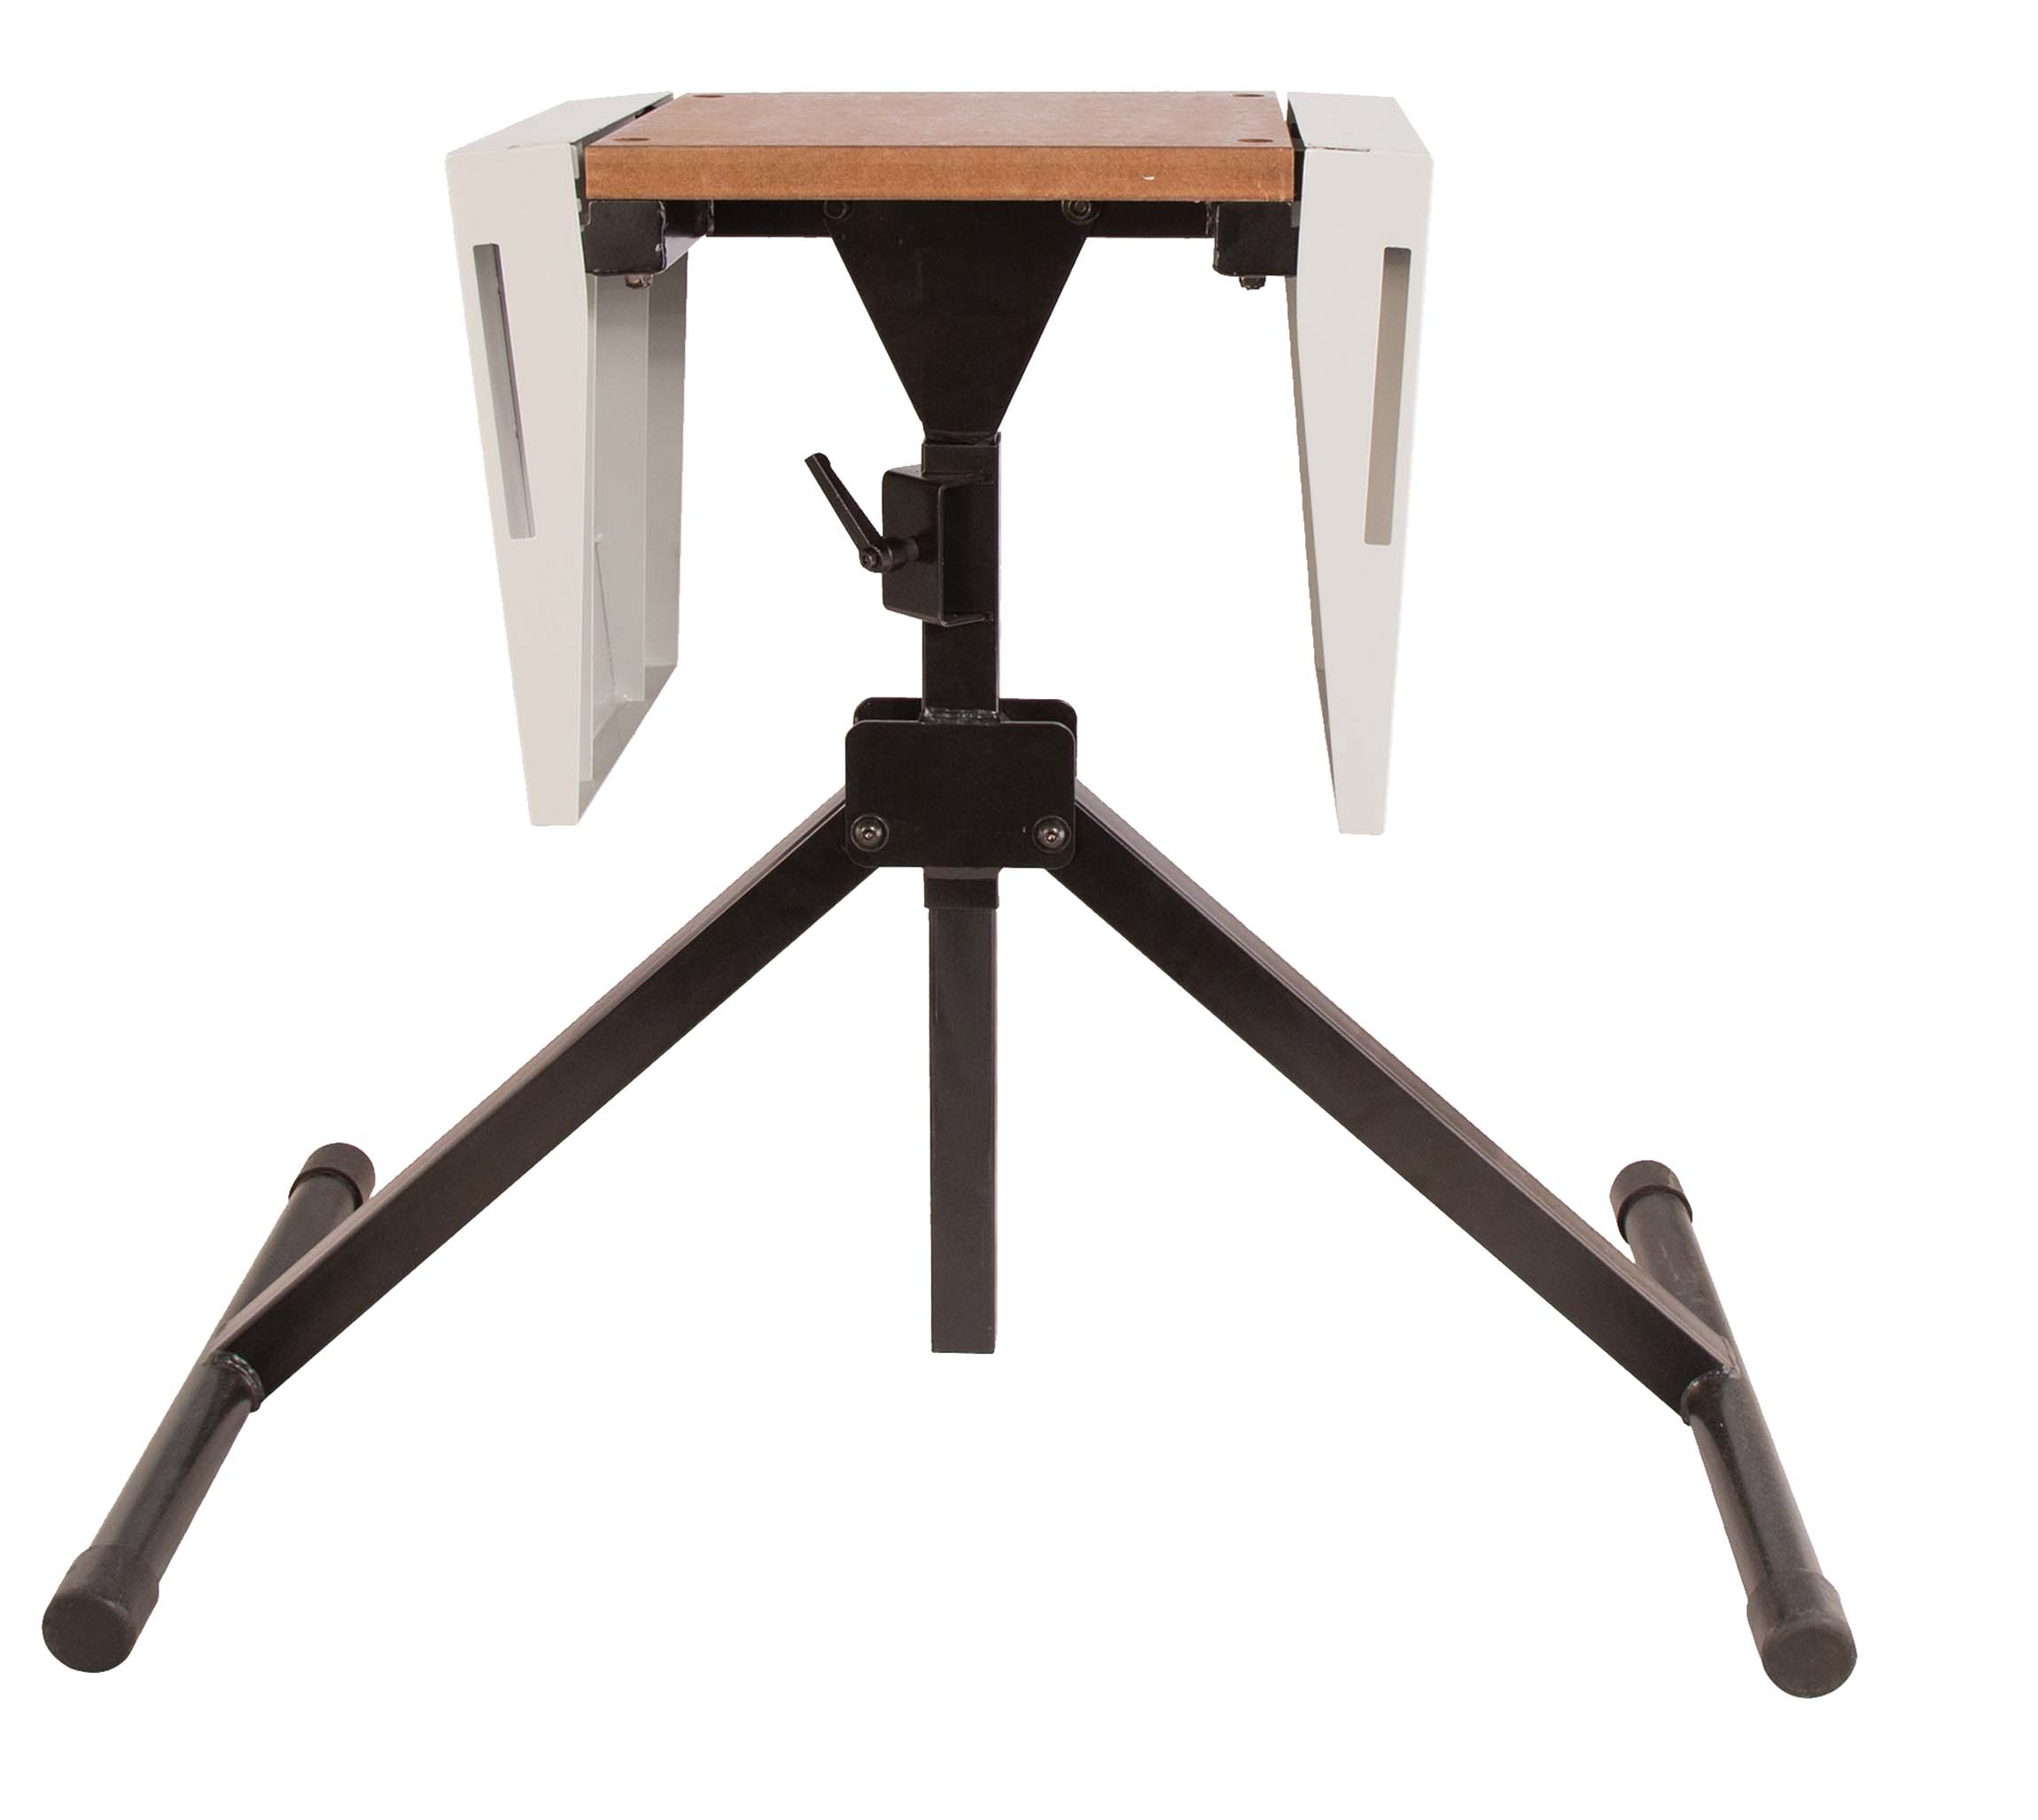 Platinum Series Reloading Stand - 489621 sides folded down